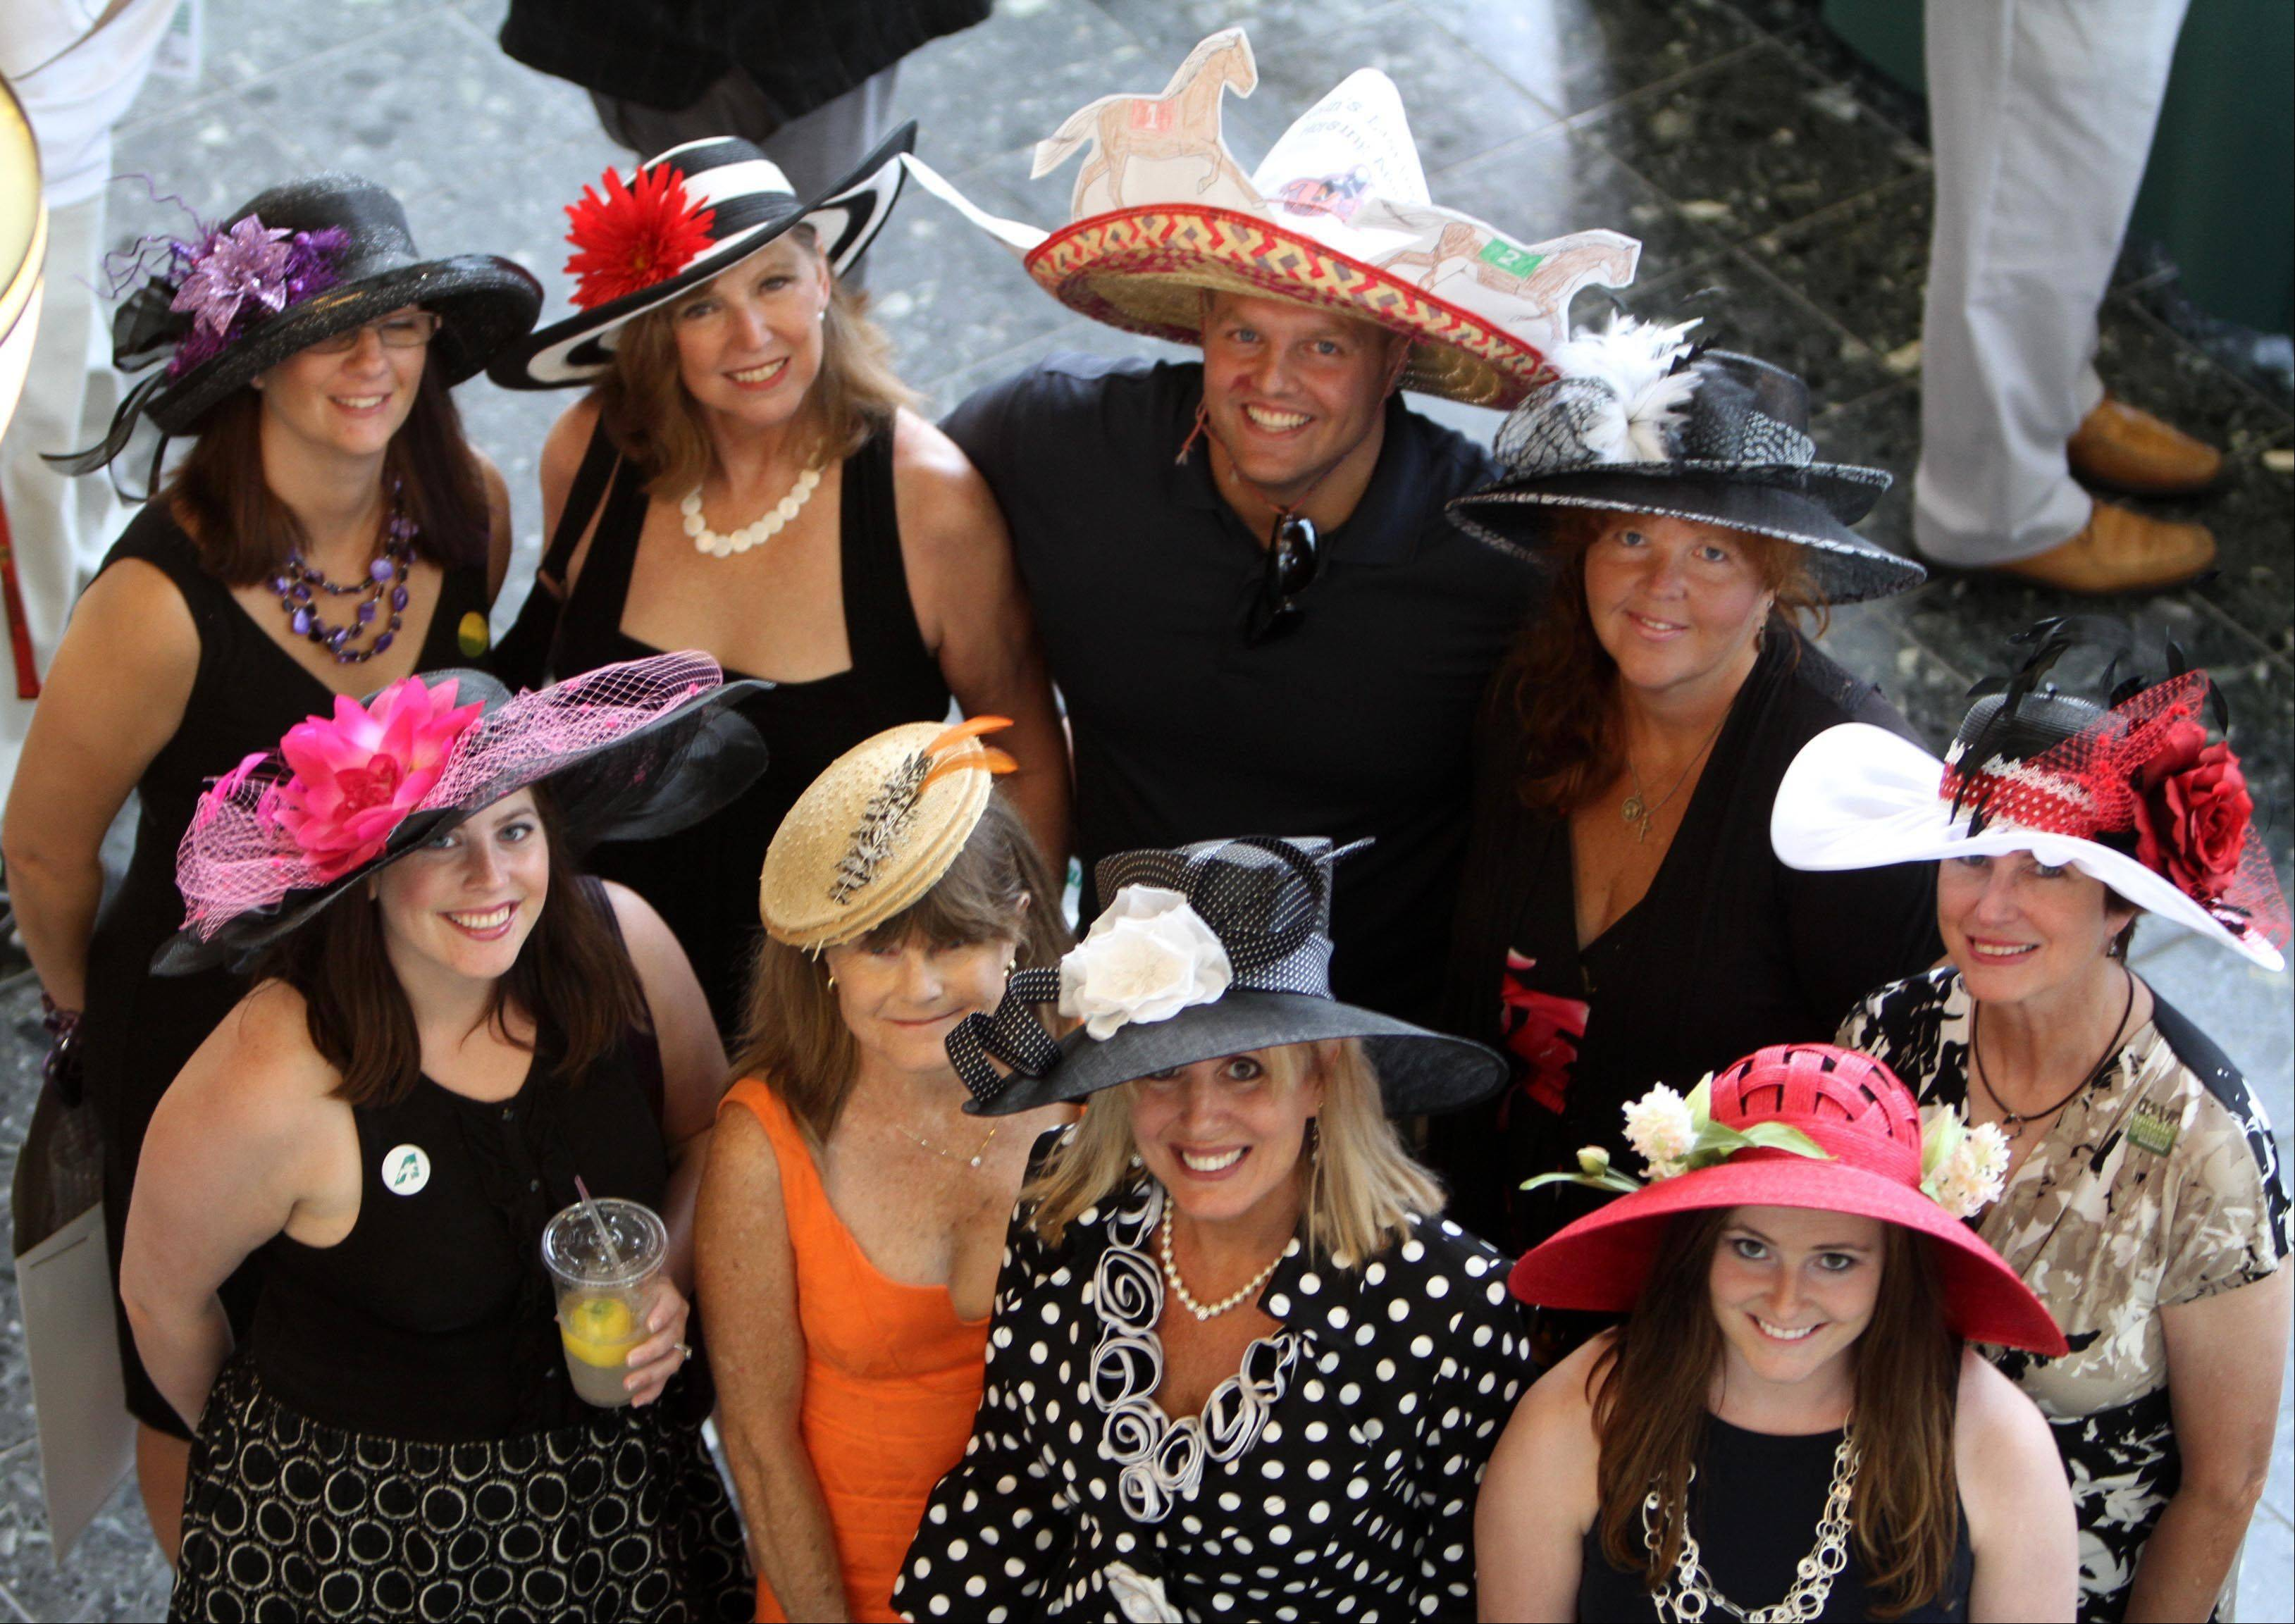 A group entering the hat contest pose before the Arlington Million at Arlington Park on Saturday.